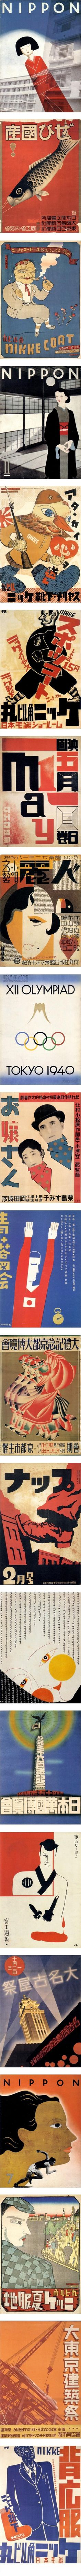 Collection of Japanese Graphic Design From The 1920s 30s #japanese #design #graphic #posters #poster